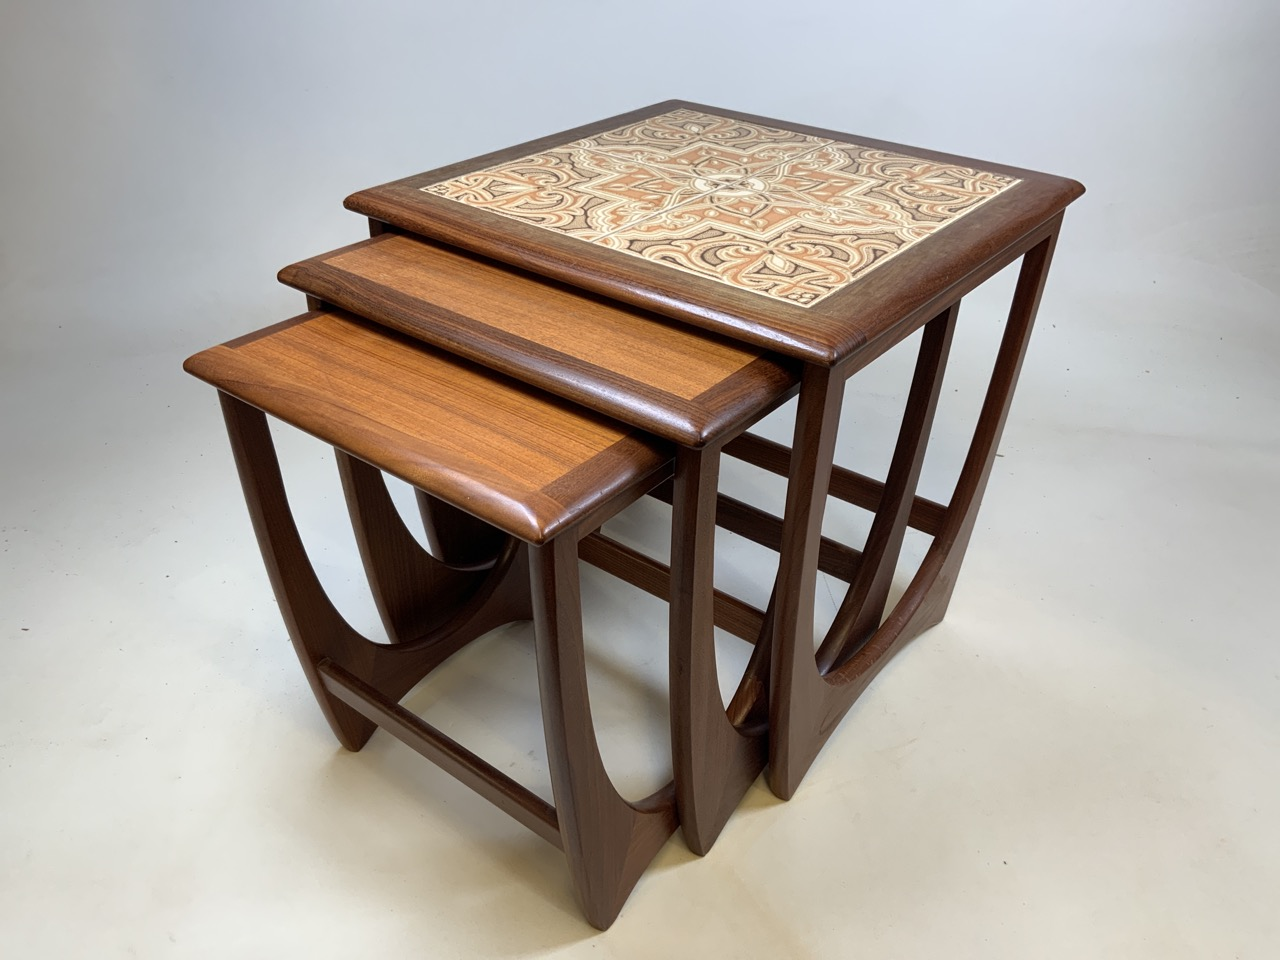 A G Plan mid century nest of three tables with tiled top table. W:50cm x D:50cm x H:51cm - Image 2 of 6